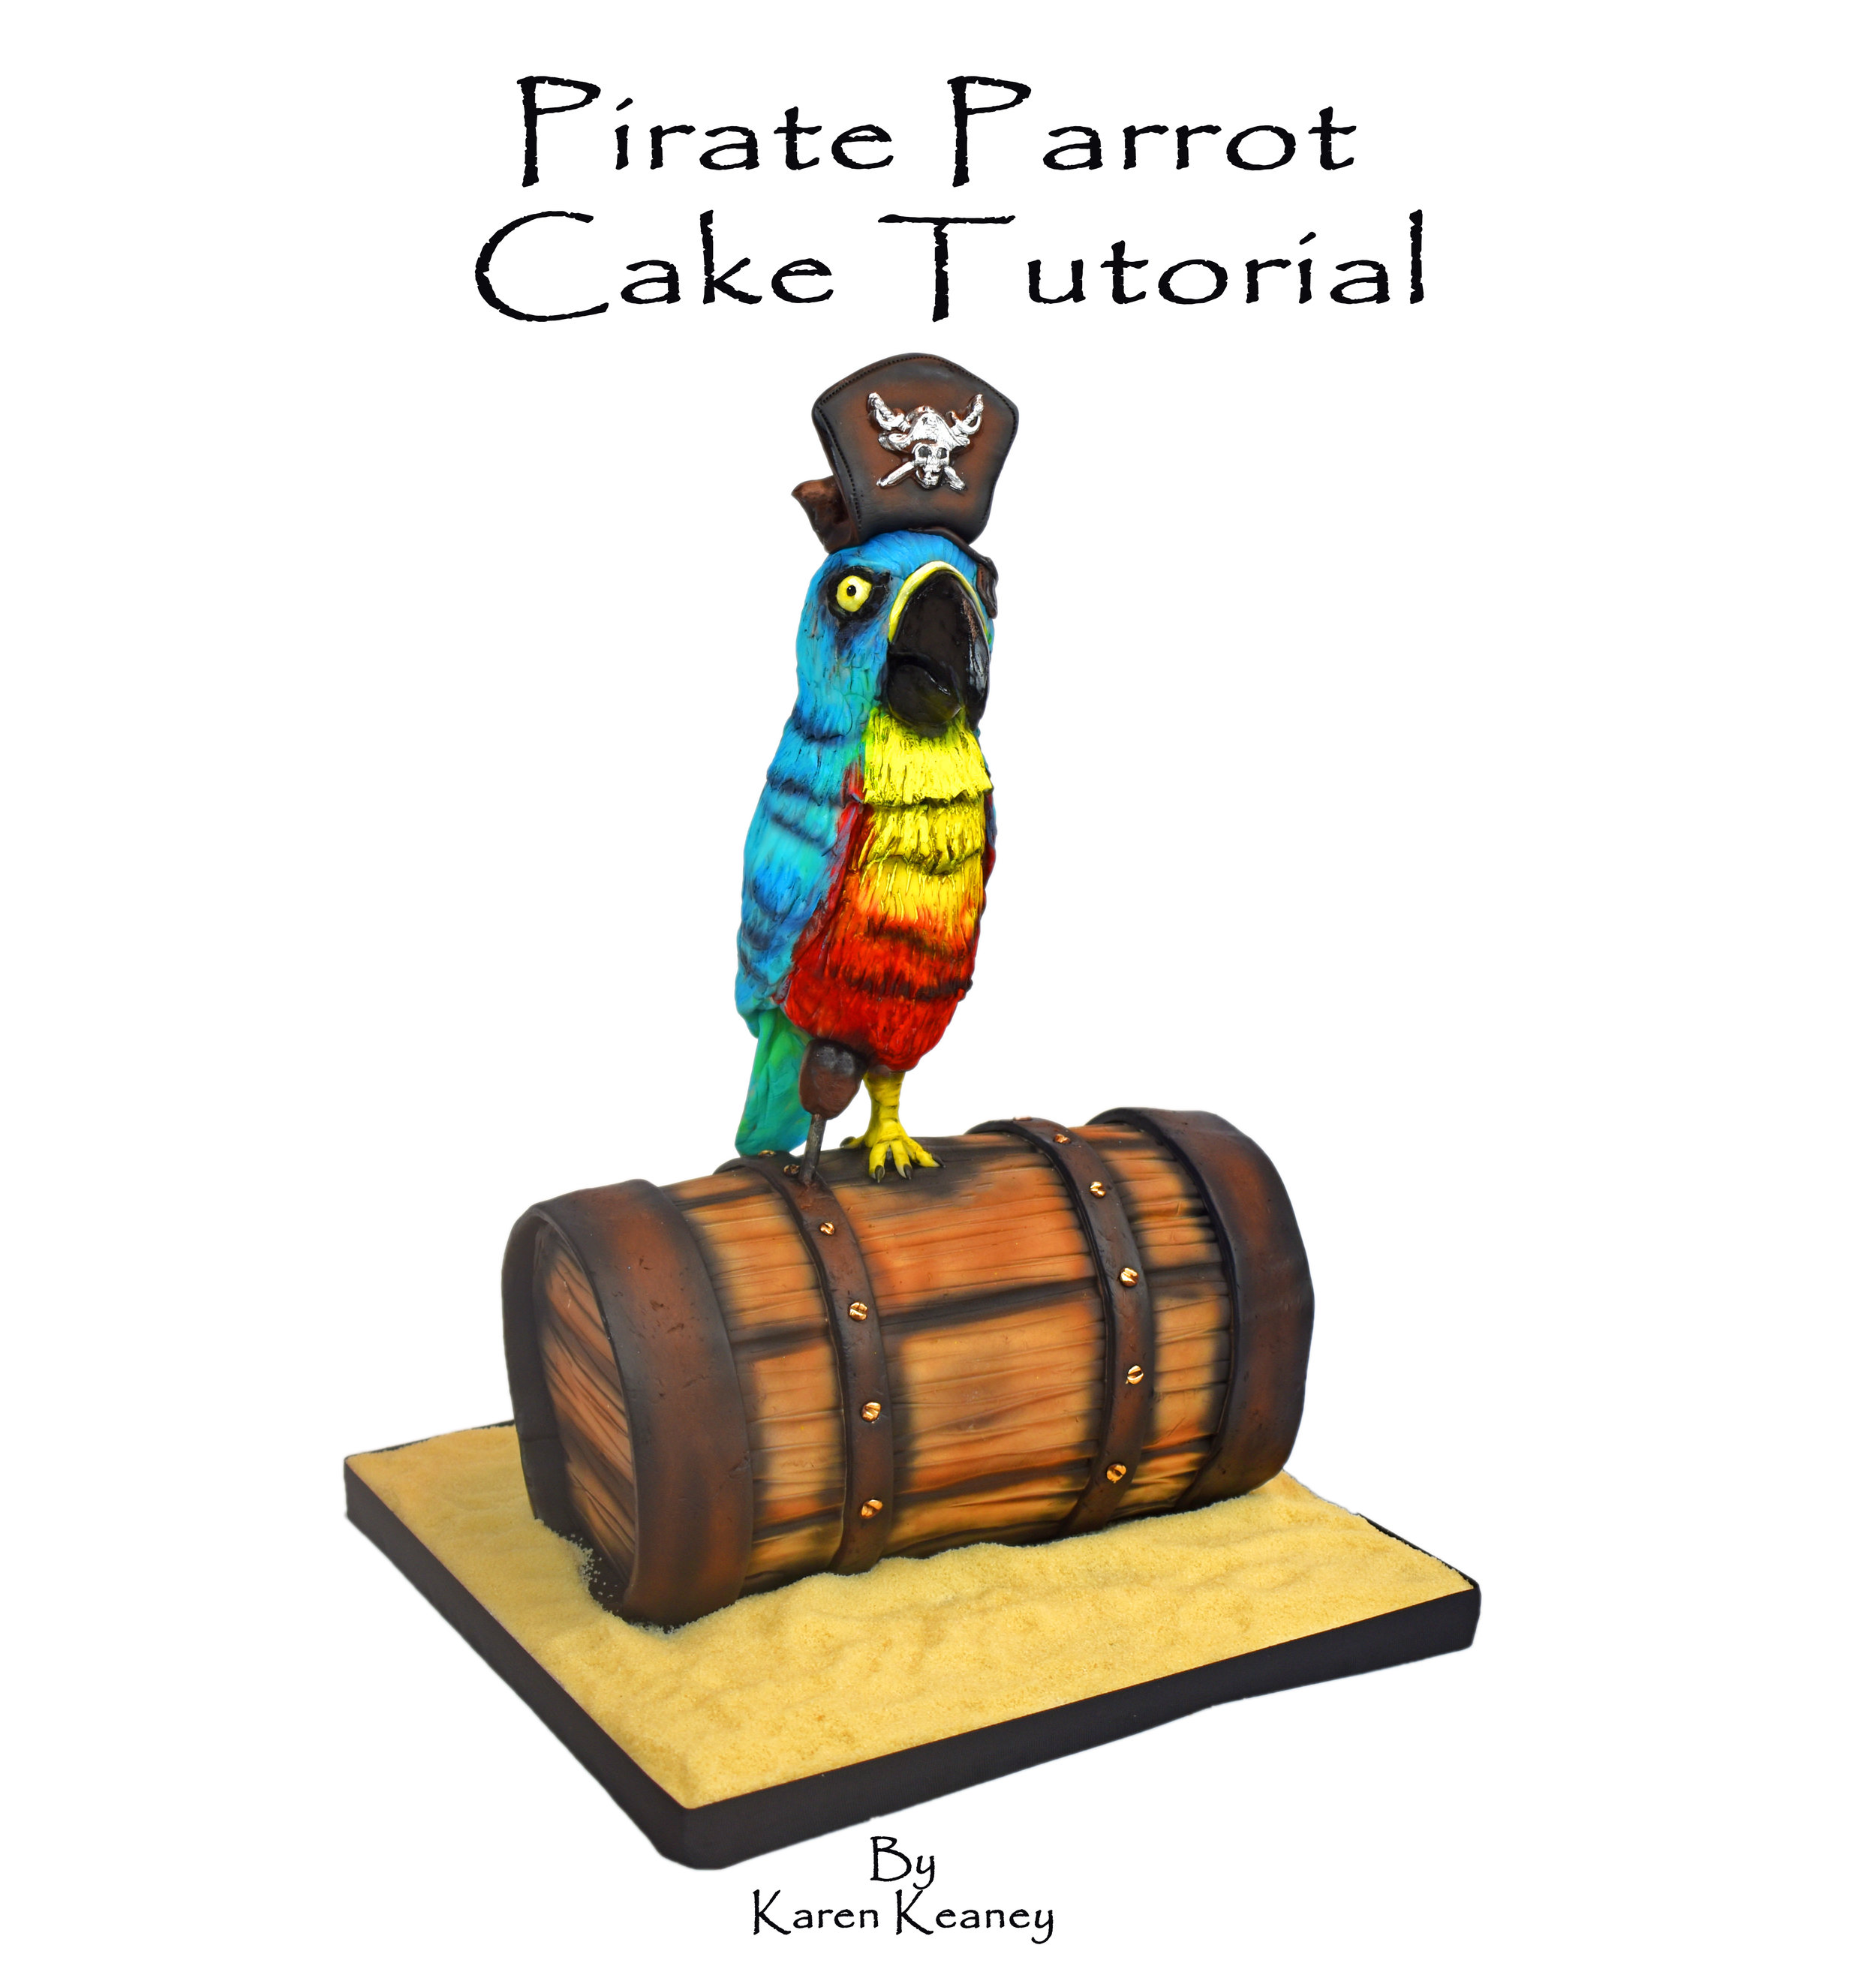 pirate parrot poster.jpg